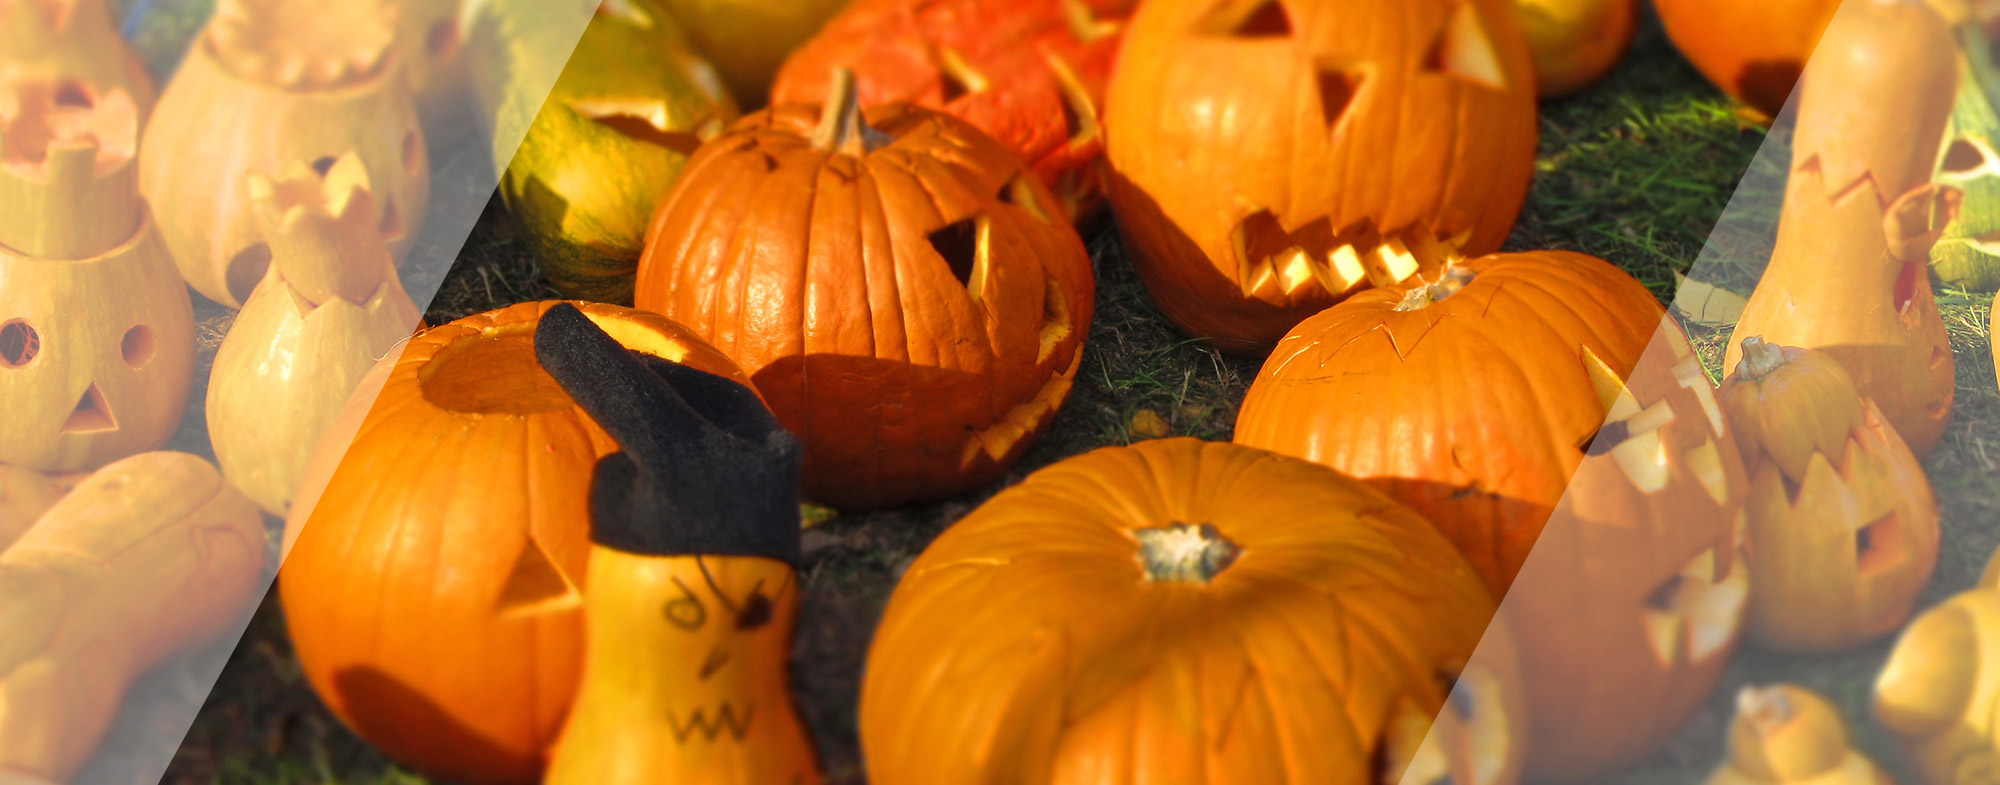 Garry Thind Top 3 Trick-or-Treating Locations in Surrey